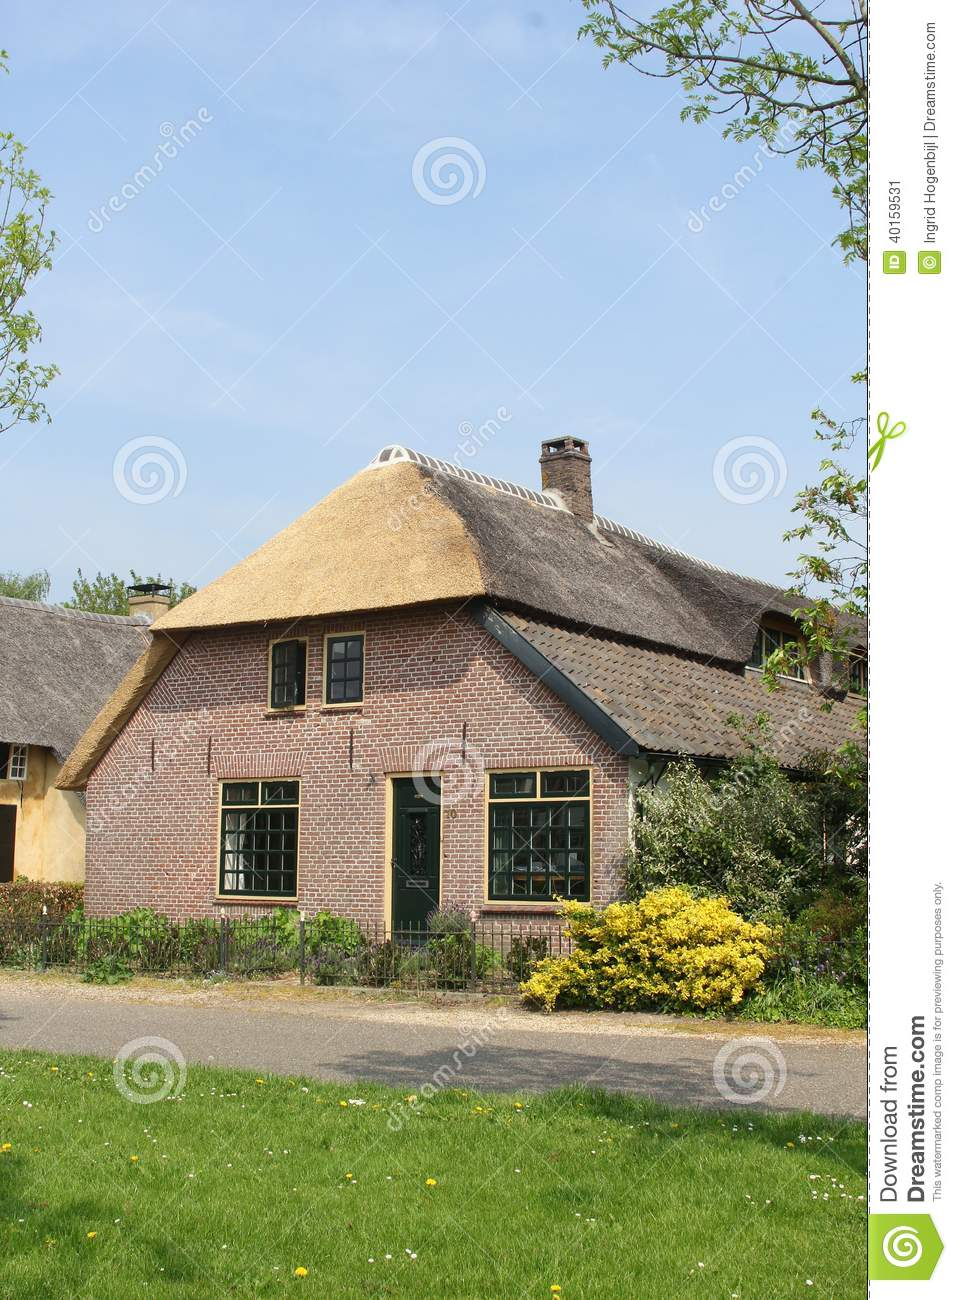 Dutch Home In Farm Style With Thatched Roof Betuwe